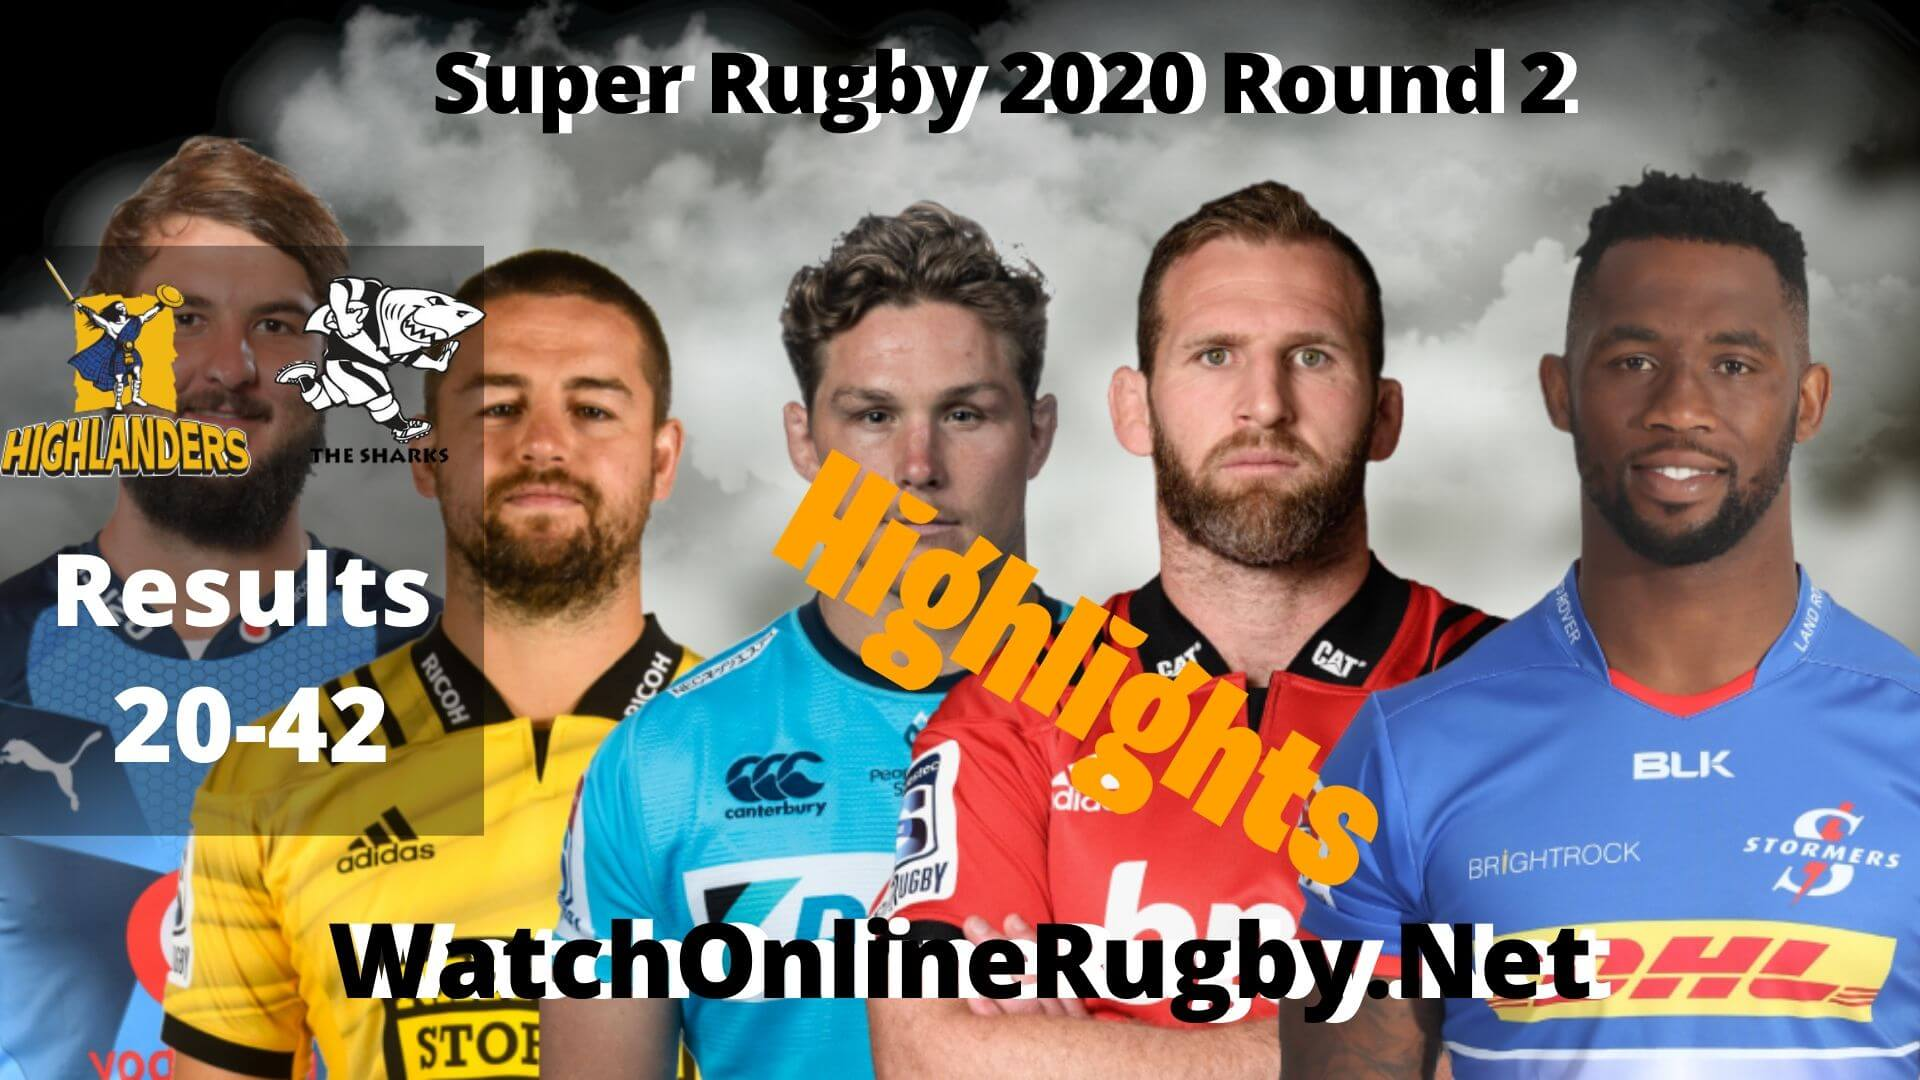 Highlanders Vs Sharks Highlights Super Rugby 2020 Round 2